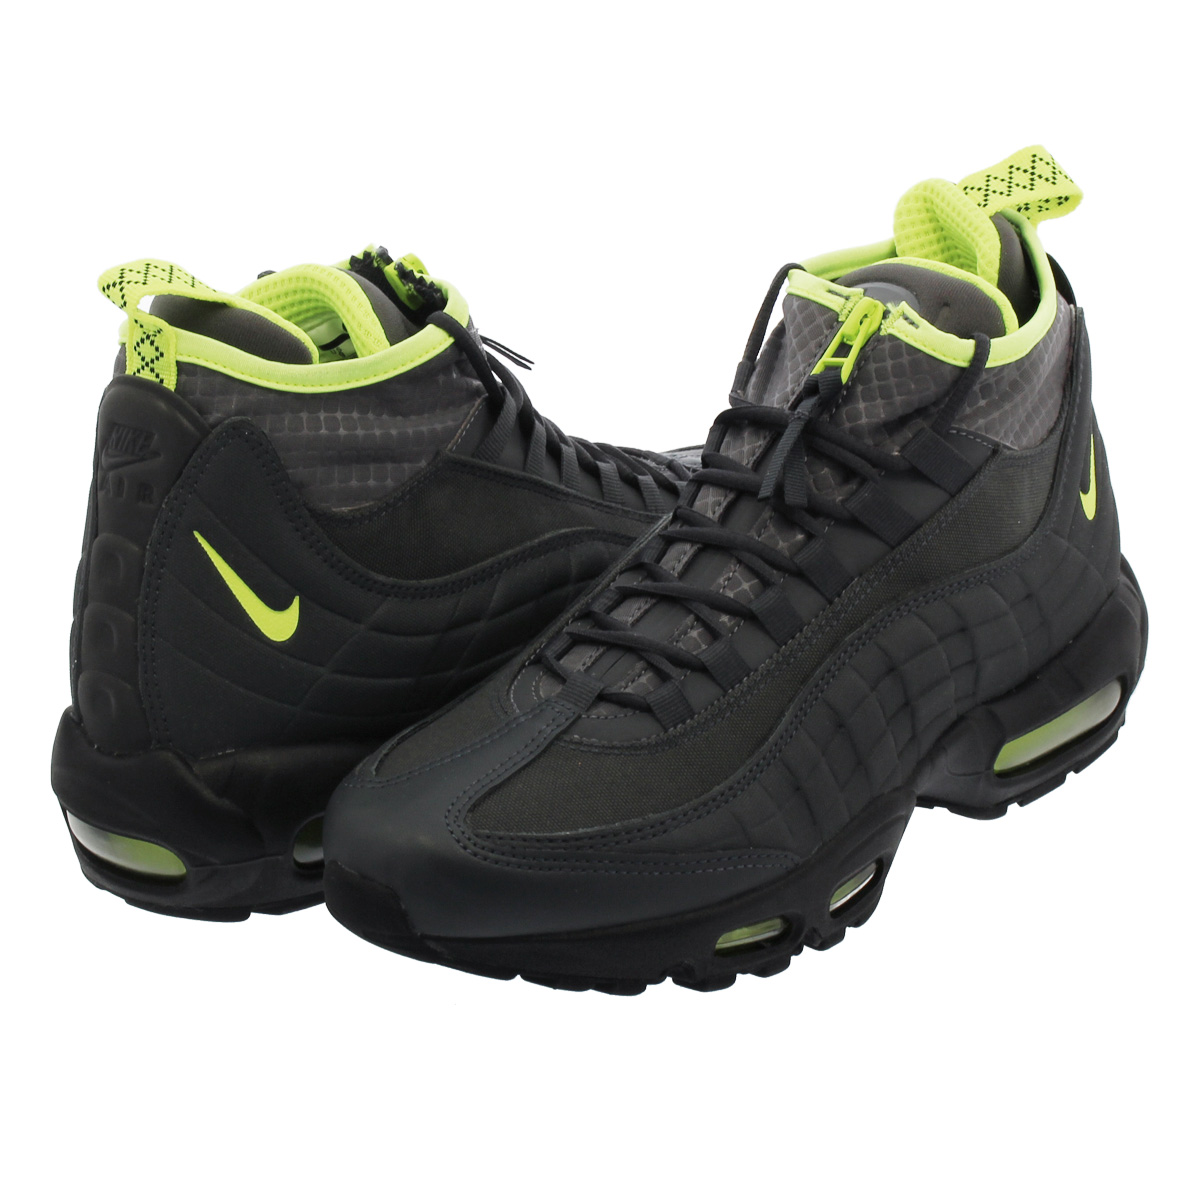 on sale a8ccc fe224 NIKE AIR MAX 95 SNEAKERBOOT Kie Ney AMAX 95 sneakers boots ANTHRACITE VOLT  DARK ...